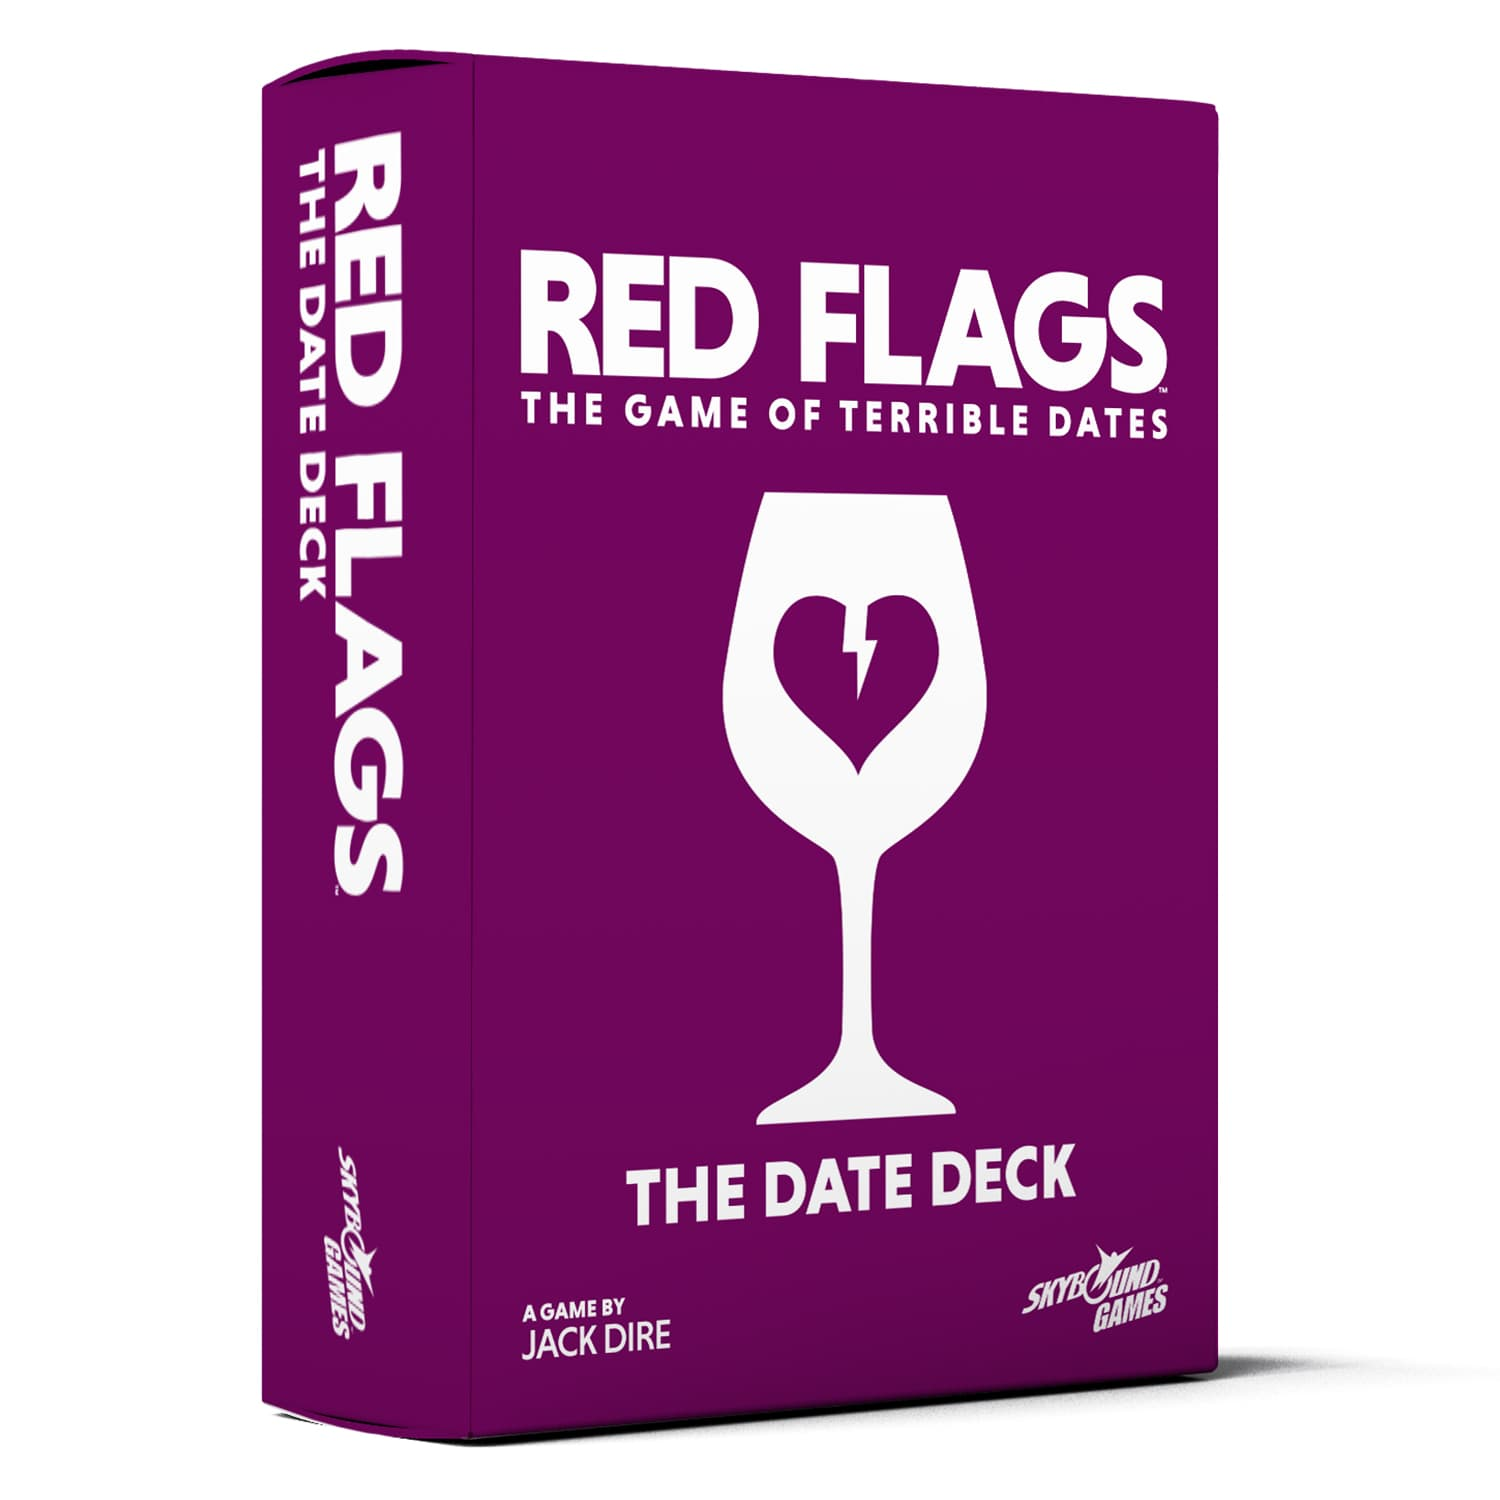 RED FLAGS: The Date Deck